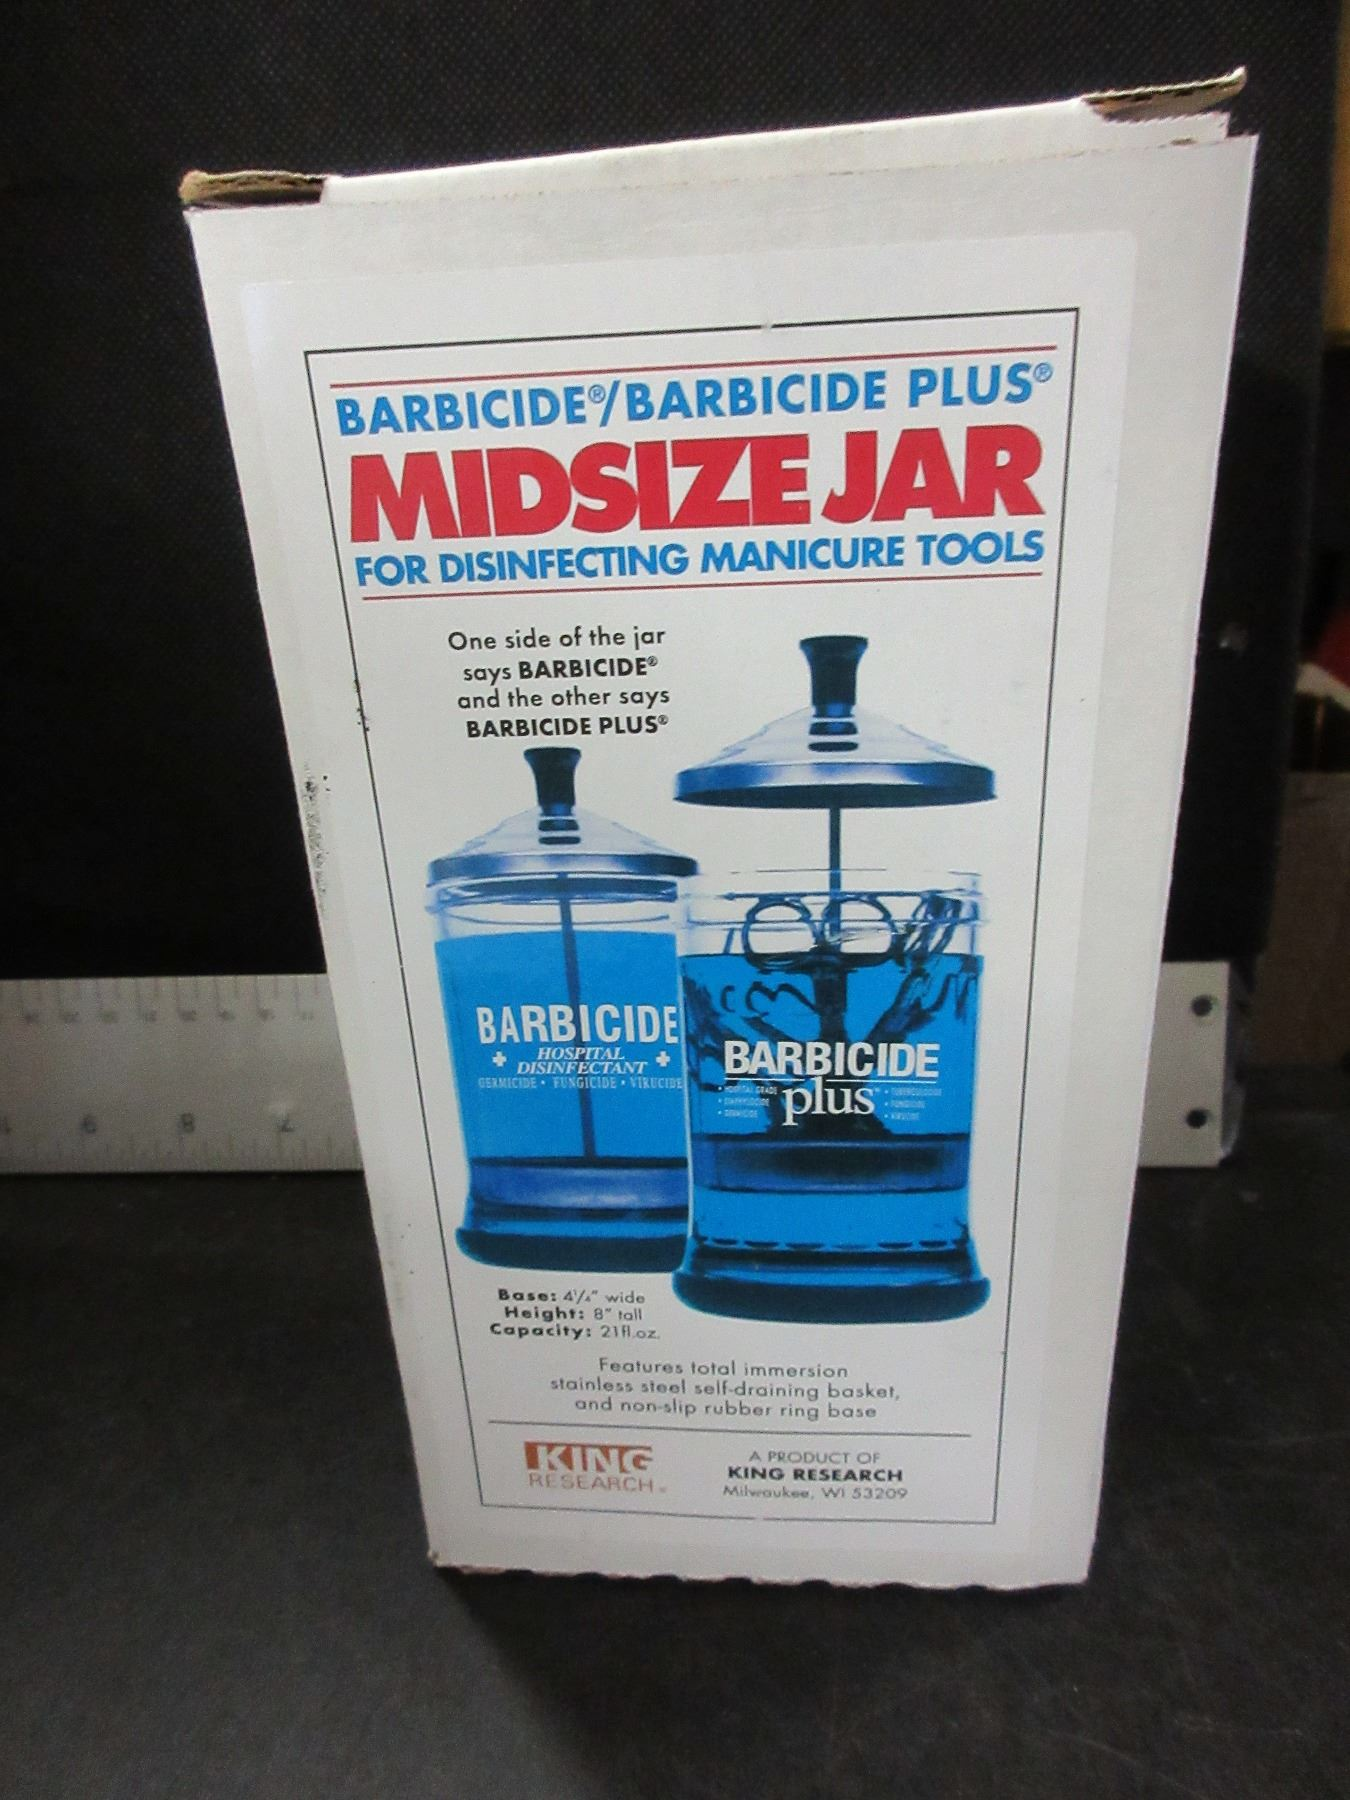 New Barbicide plus Midsize Jar for disinfecting manicure tools